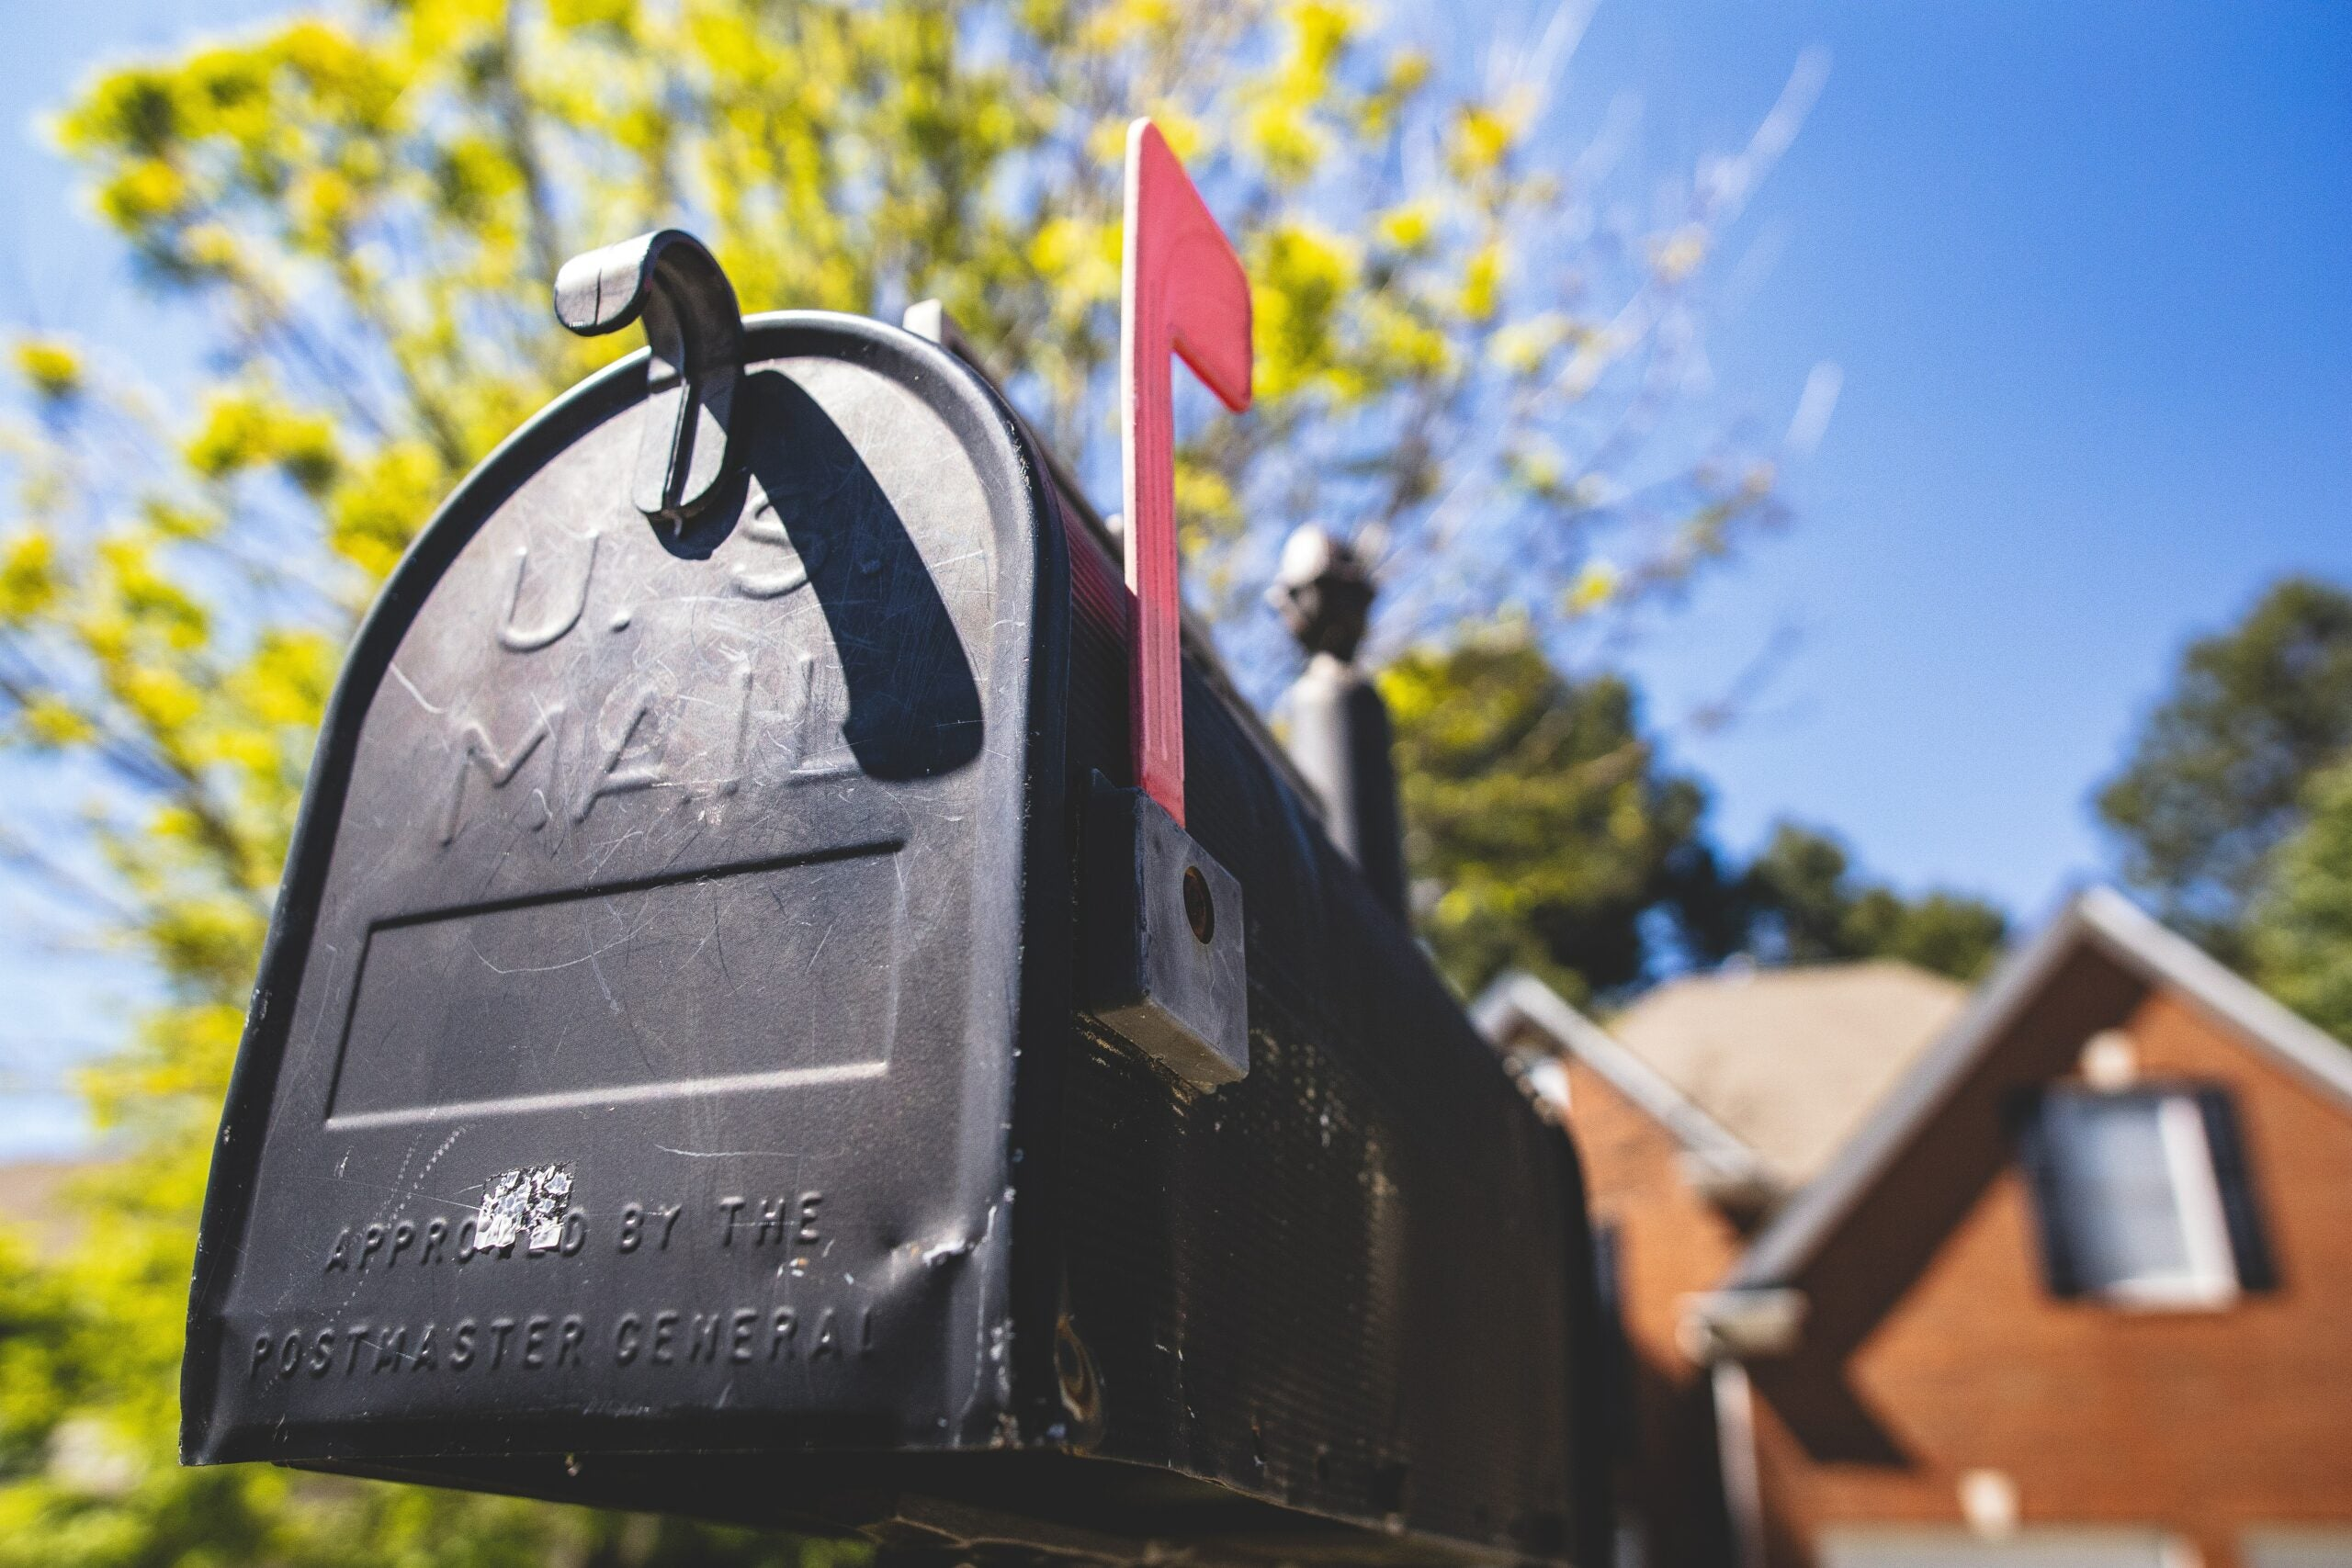 With a dysfunctional postal service, much of the population would lose access to much needed medications.